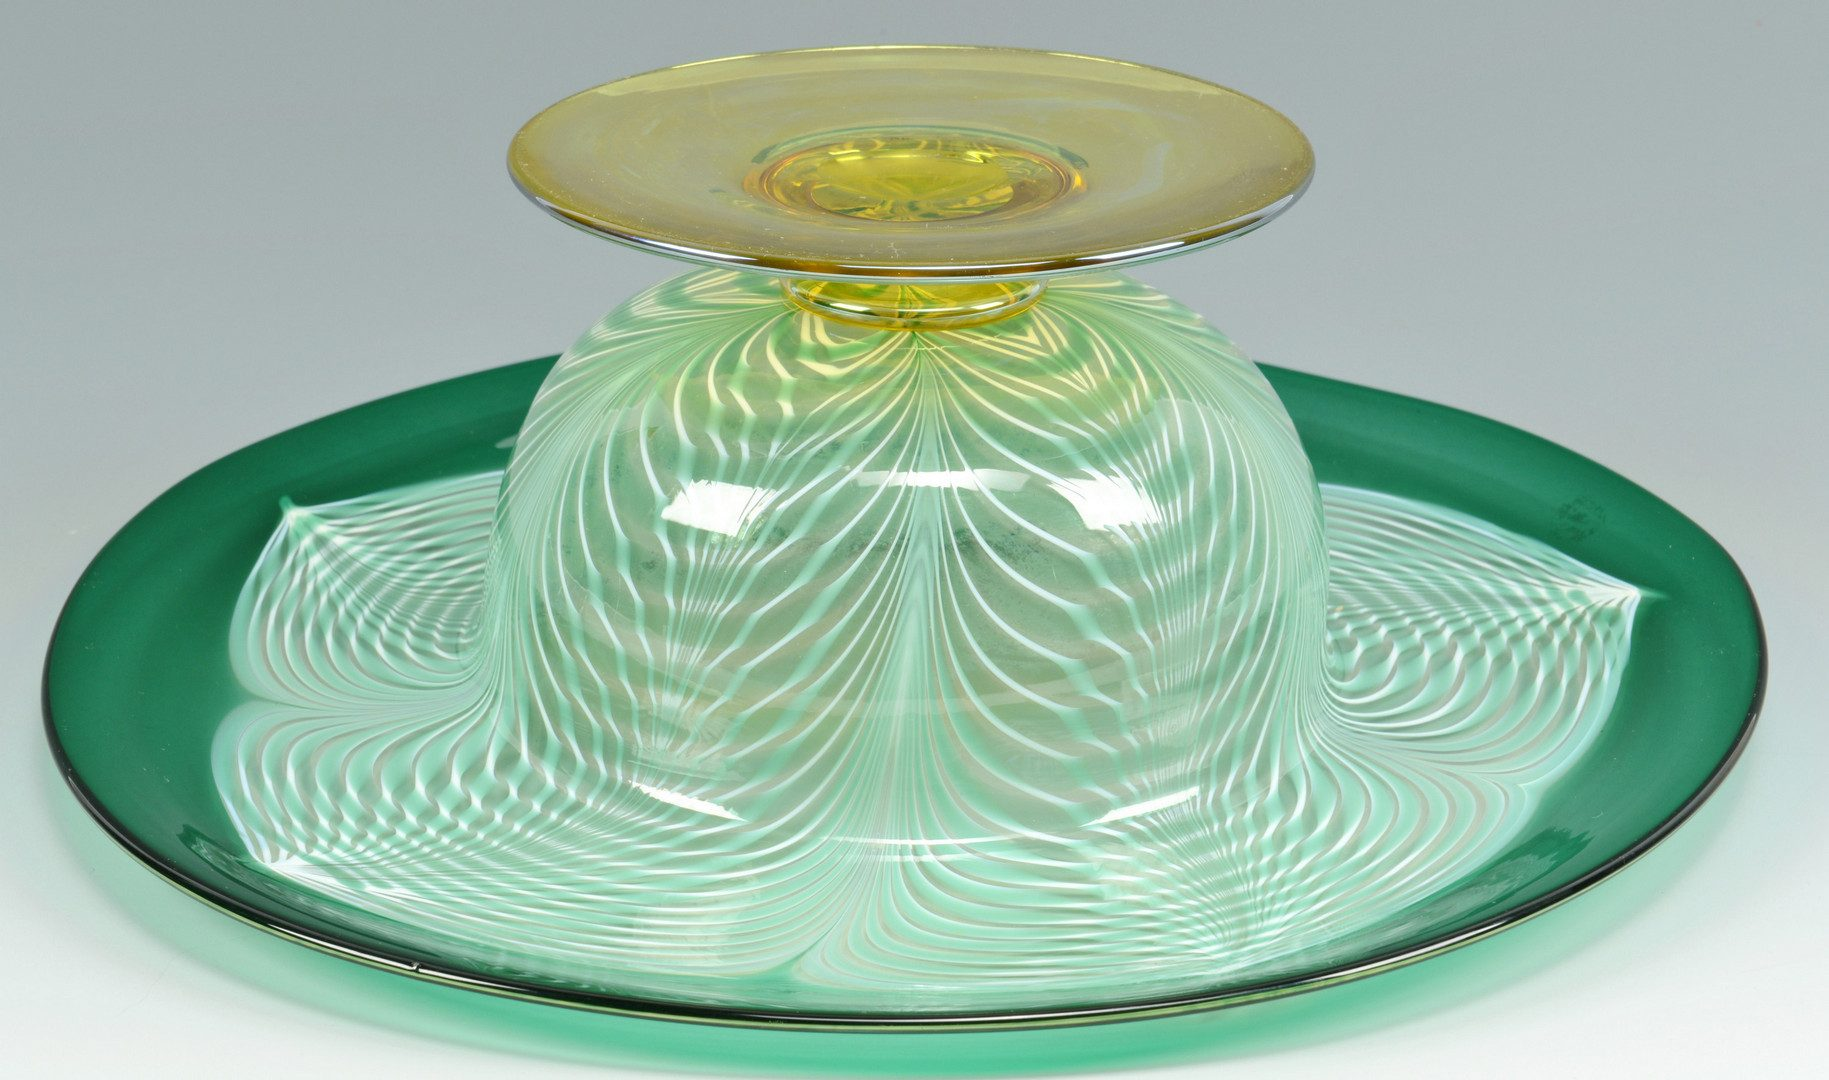 Lot 502: Large Durand Peacock Feather Compote